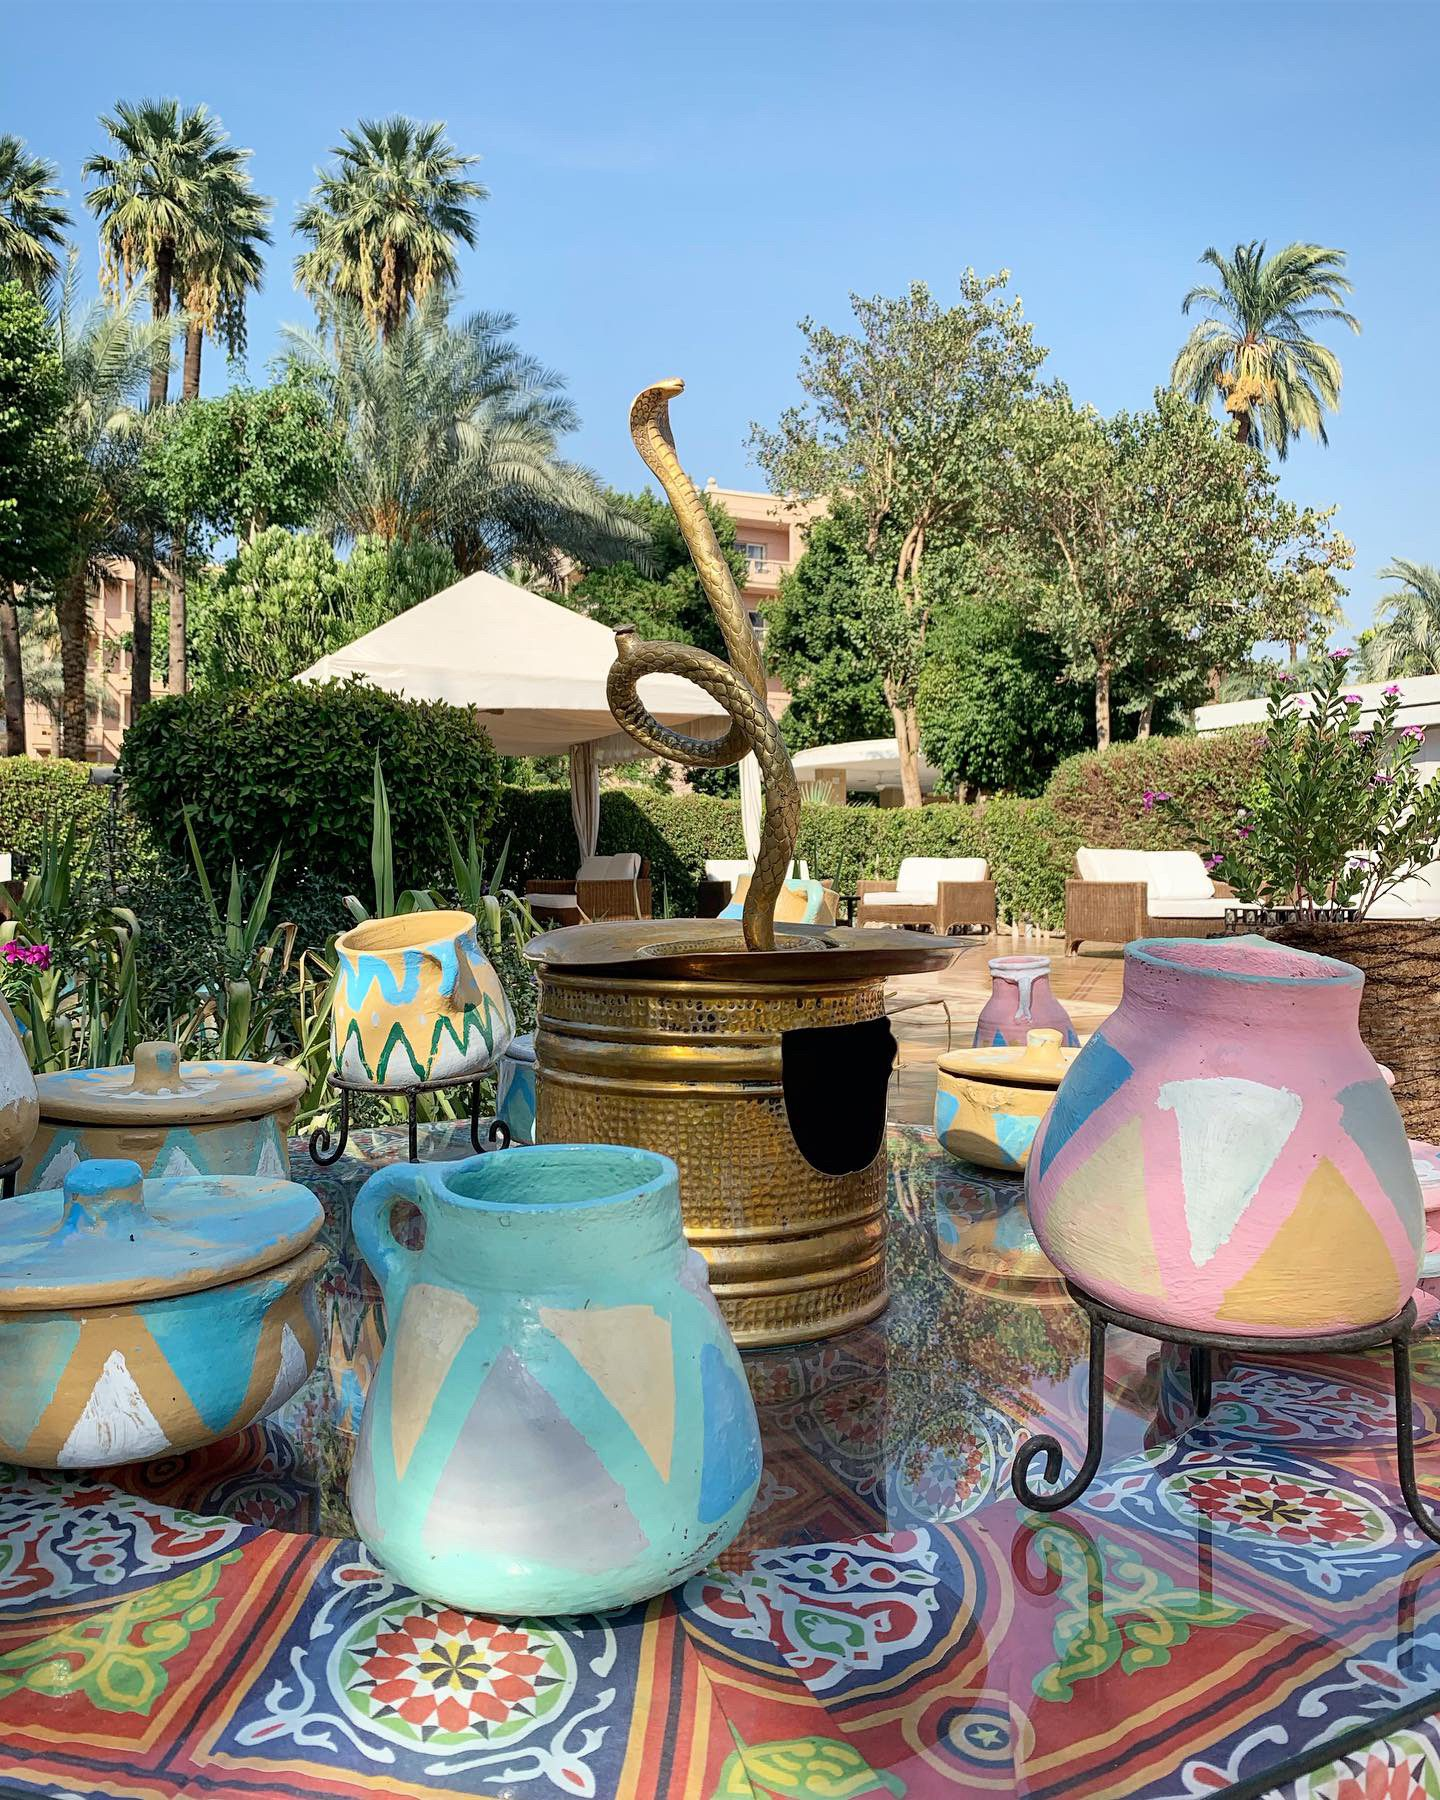 Local art and ceramics at Winter Palace Hotel Luxor